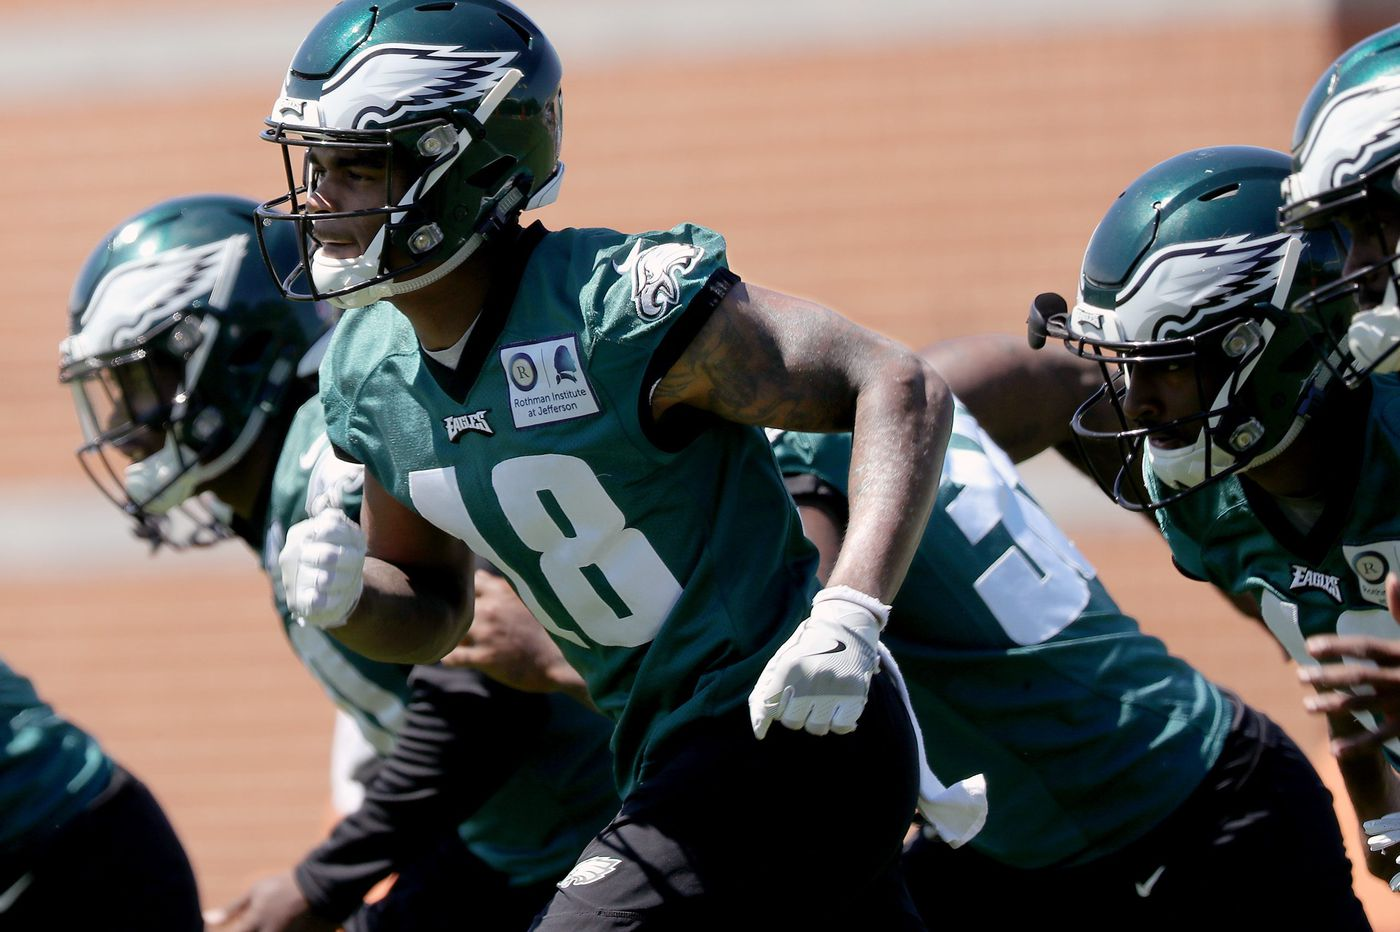 Eagles' receiver Shelton Gibson enters concussion protocol during training camp